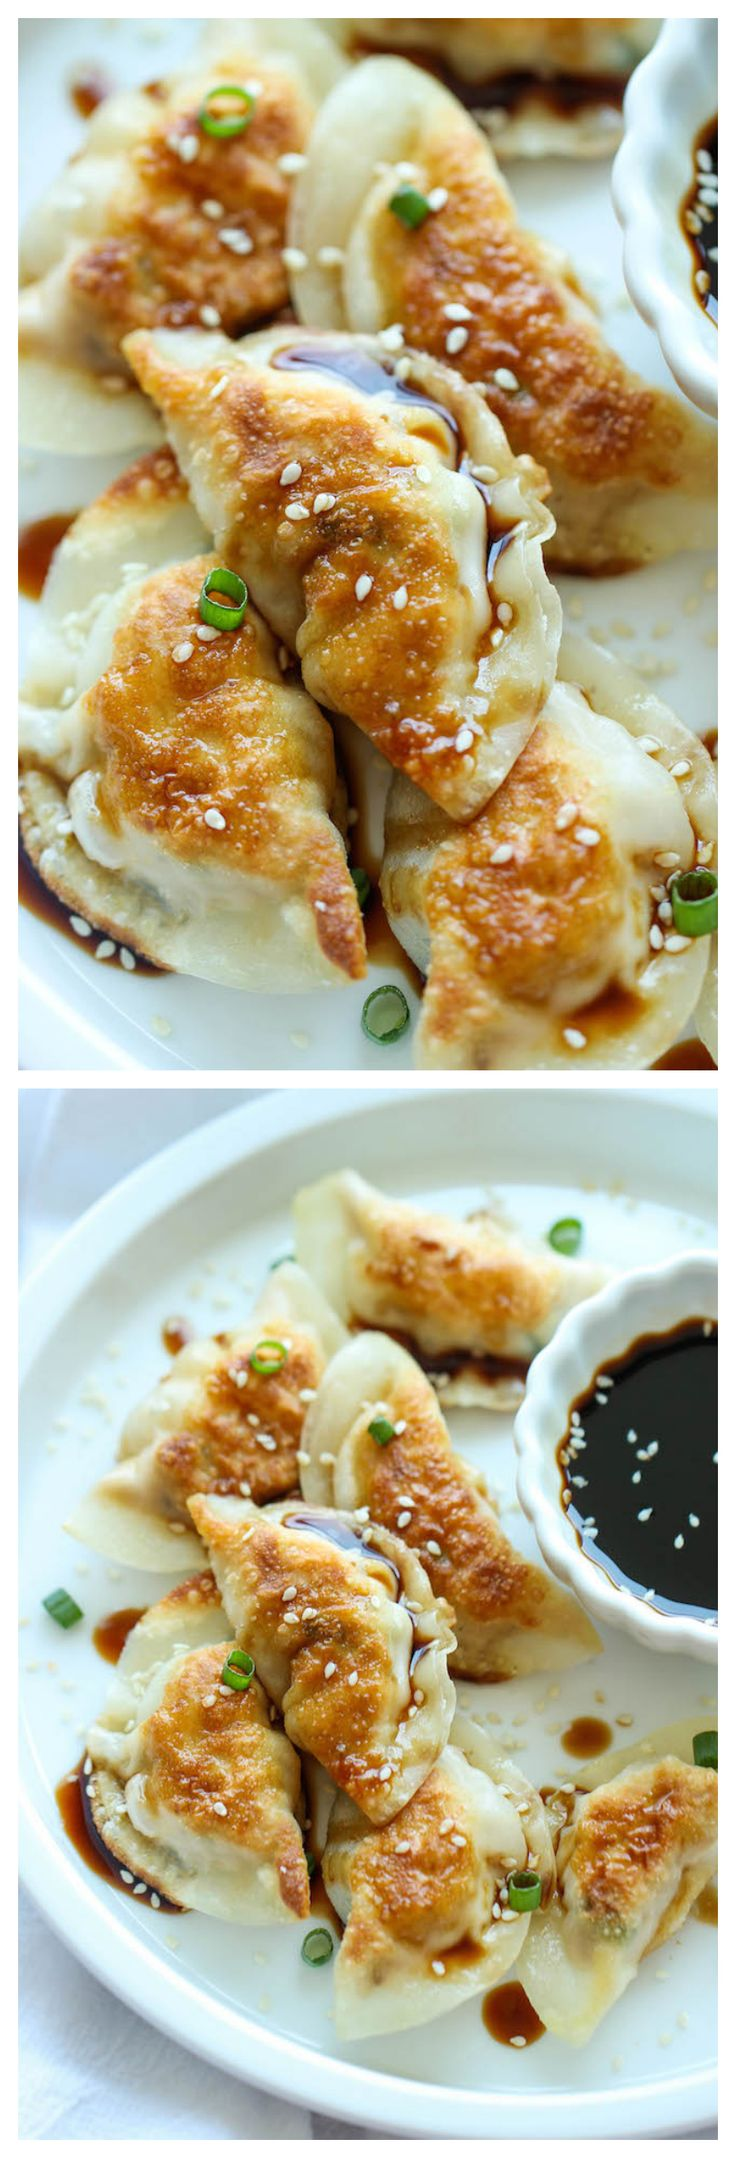 Sesame Chicken Potstickers - These are unbelievably easy to make. And they're freezer-friendly too, perfect for those busy weeknights!